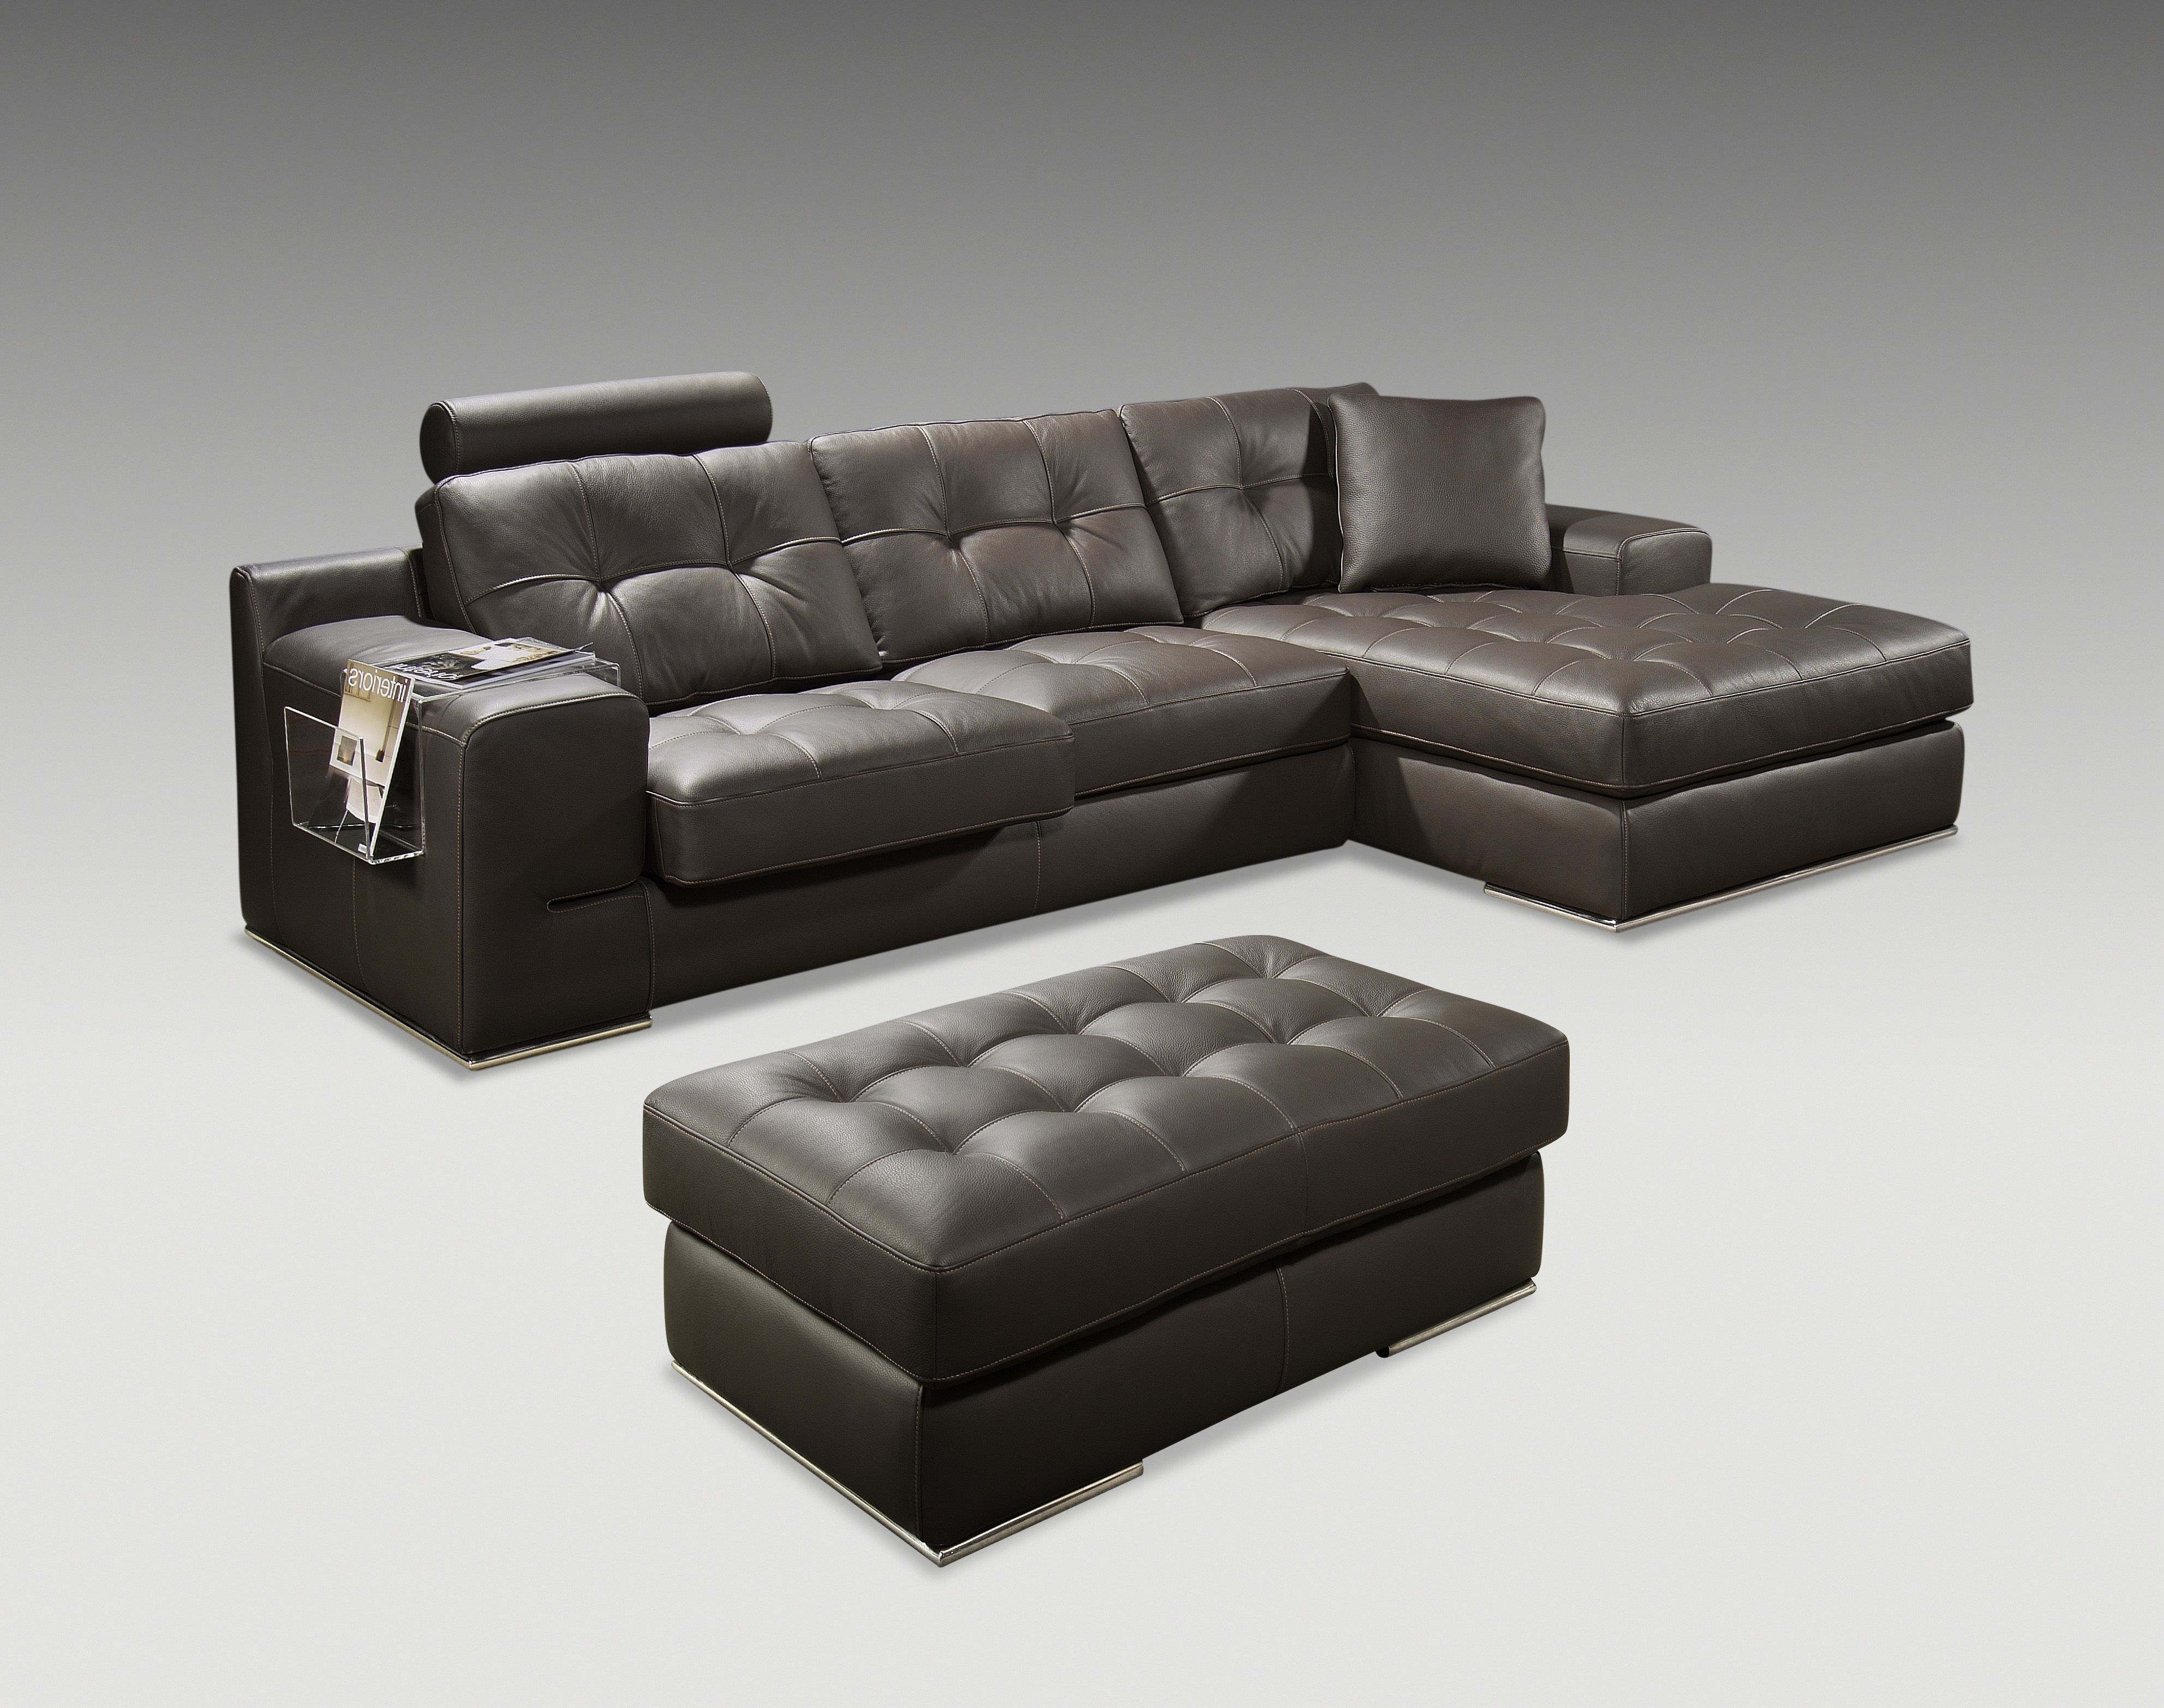 Fiori I Sectional and Ottoman by Kelvin Giormani